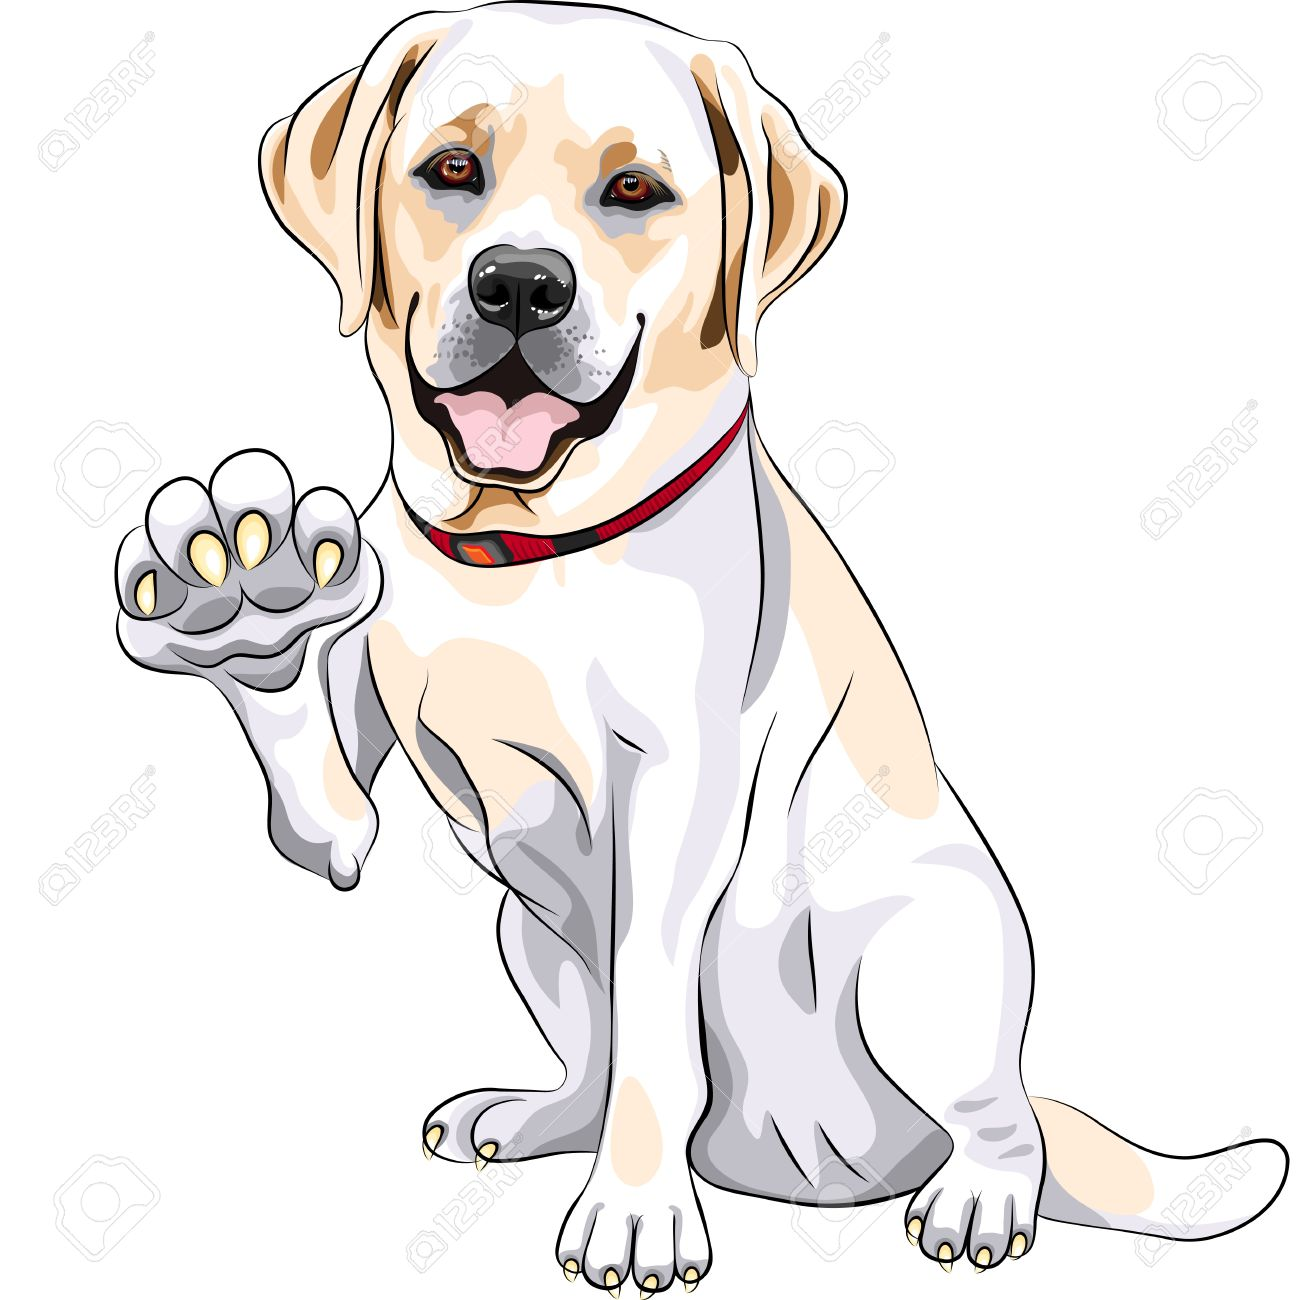 Labrador clipart #19, Download drawings